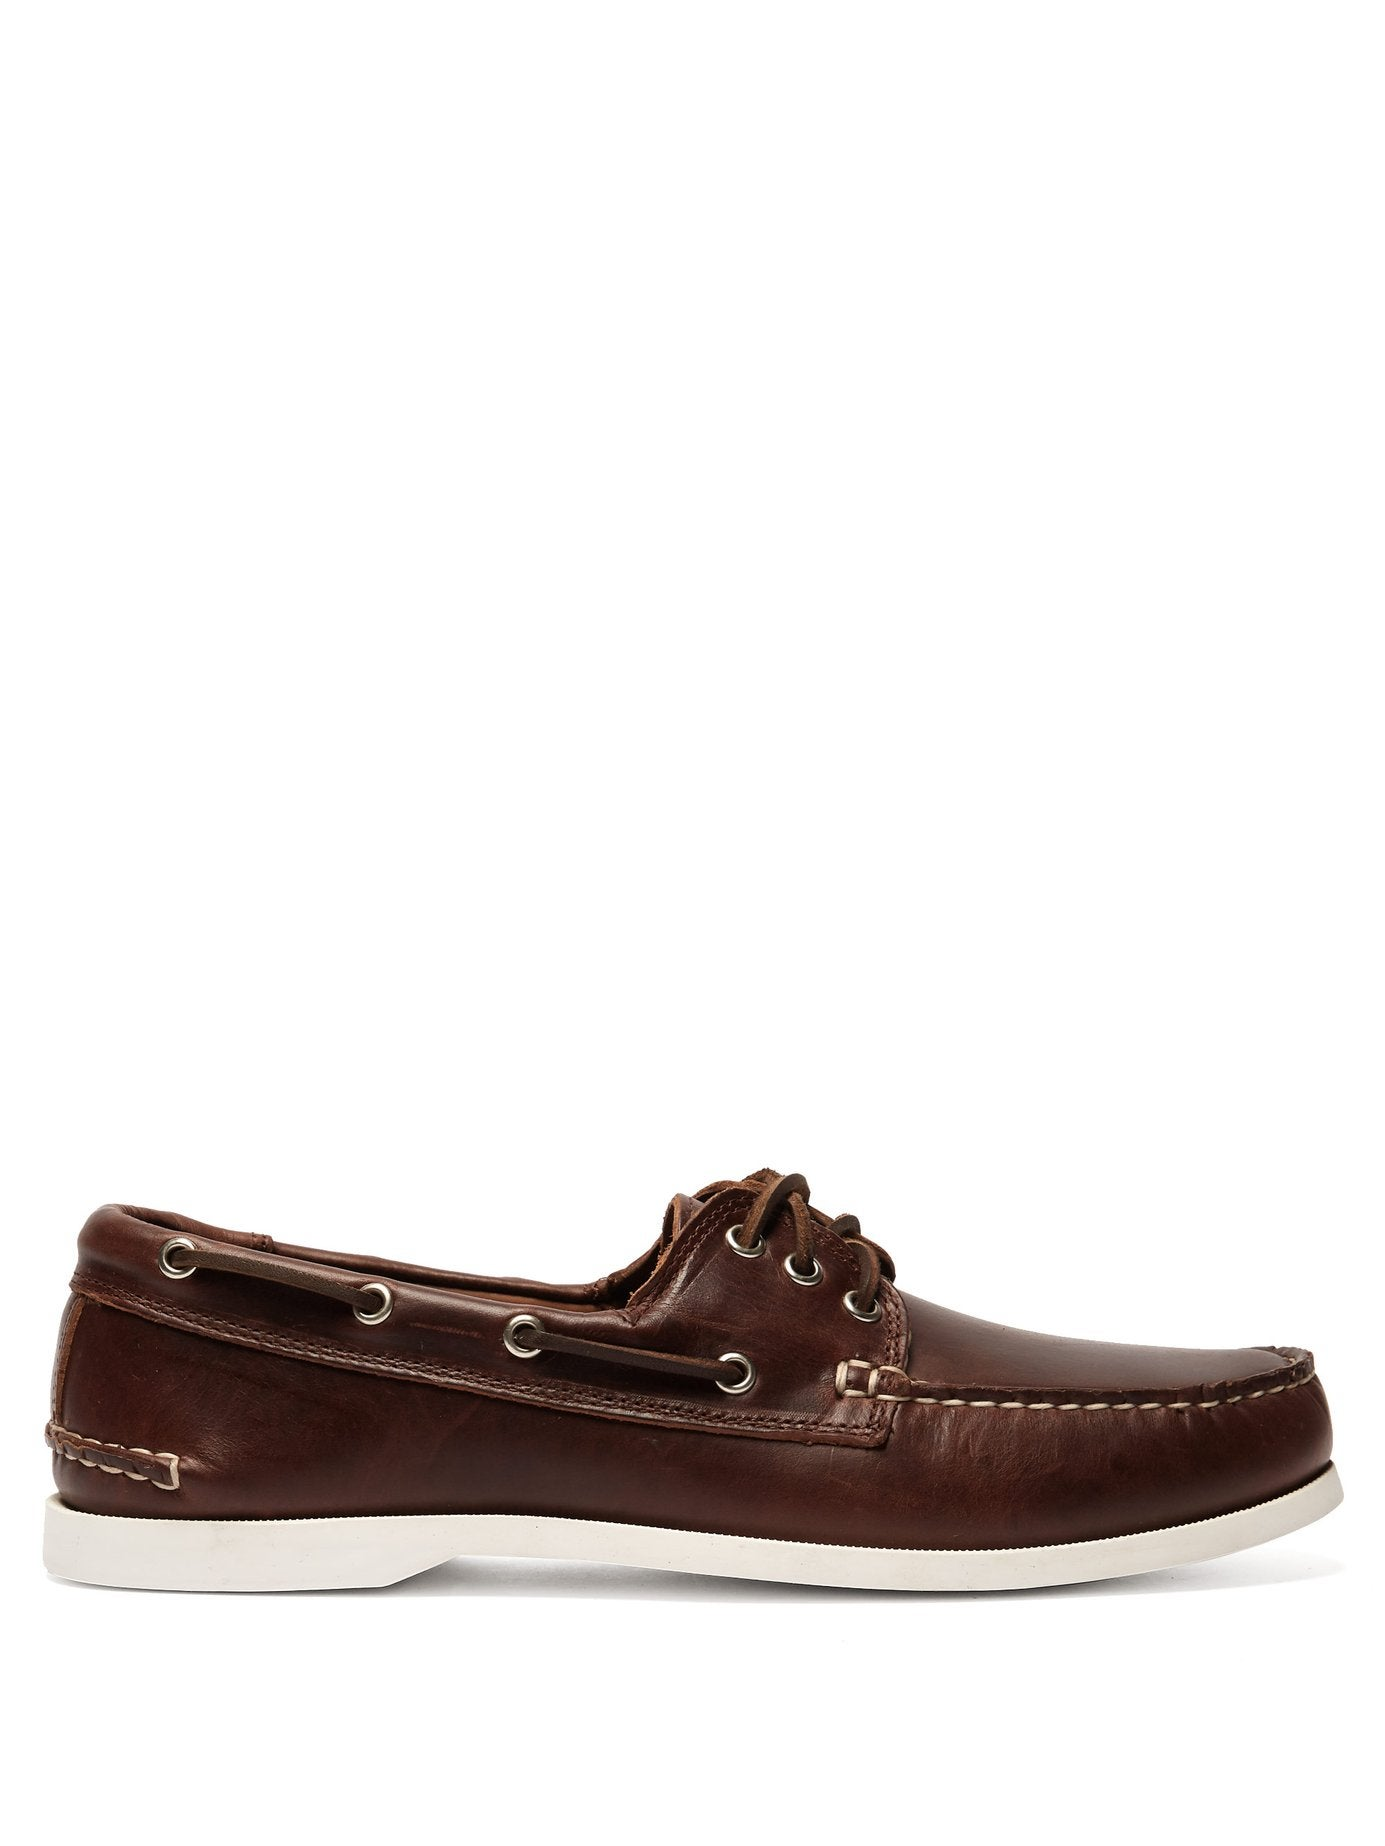 Quoddy Downeast Boat Dress Shoes